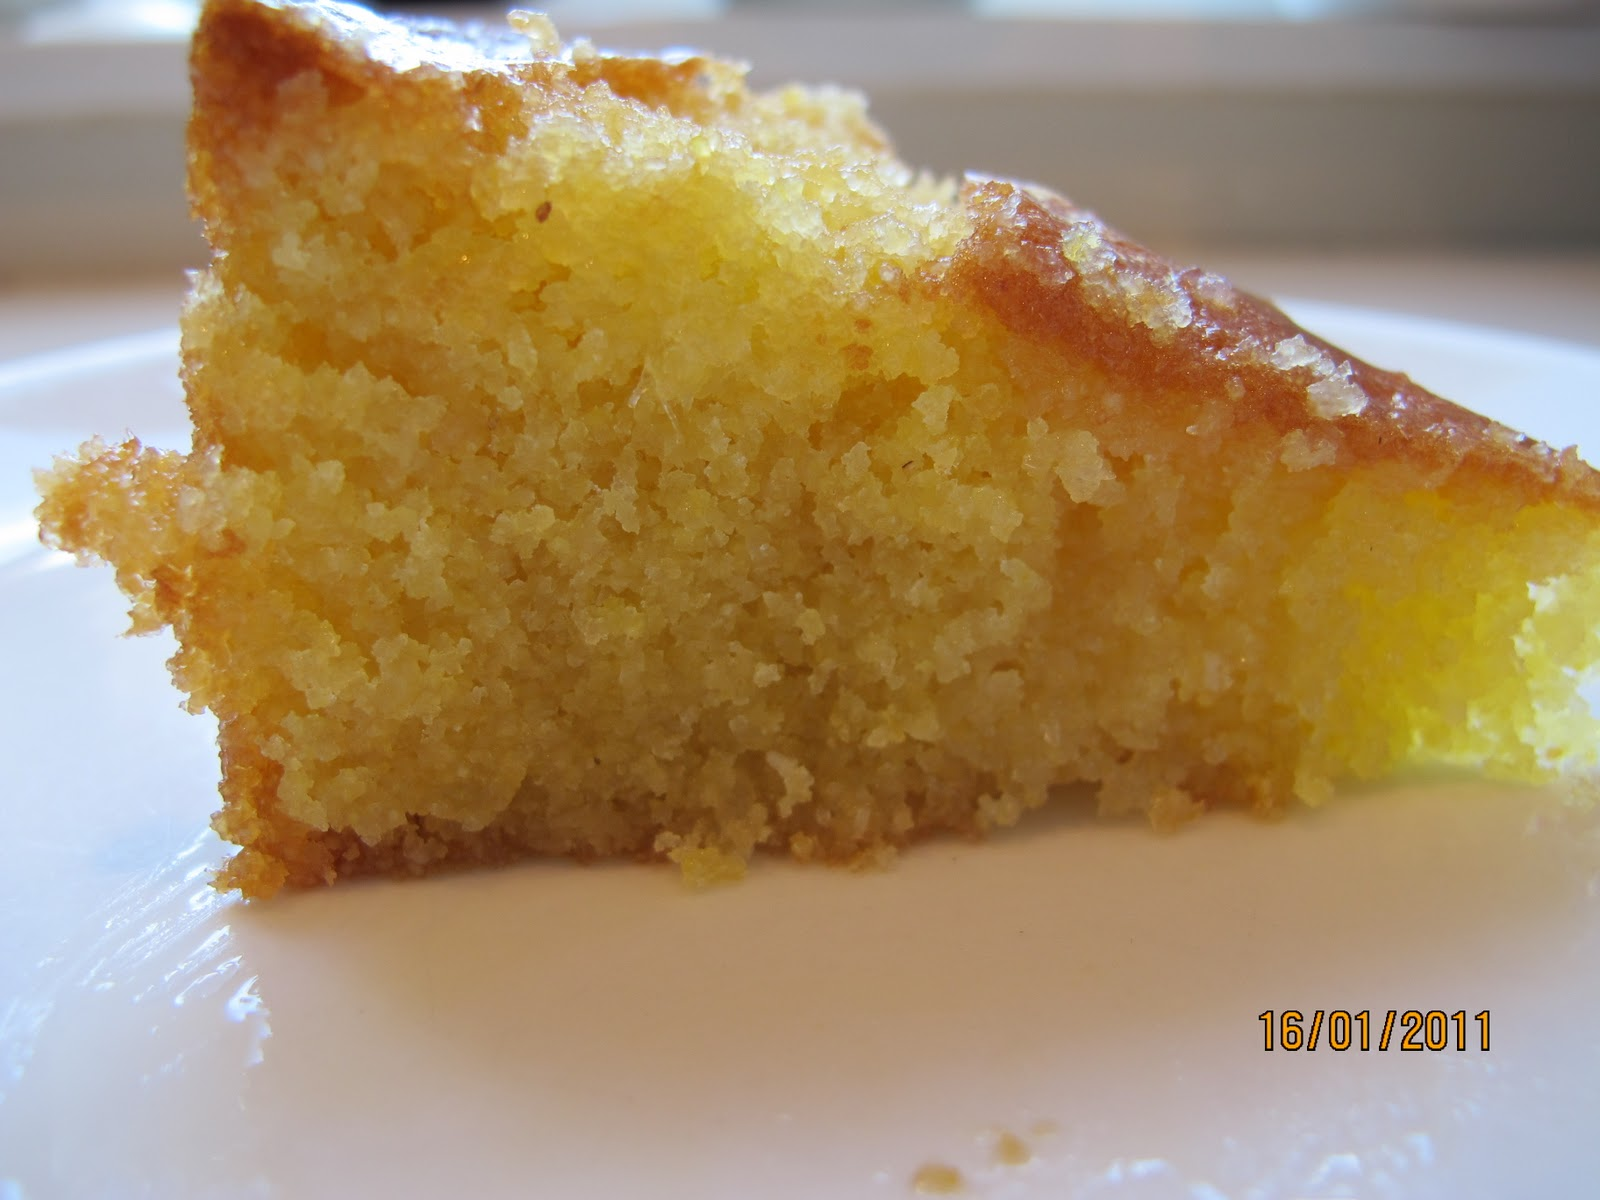 It's all about family and food: Lemon Polenta Cake